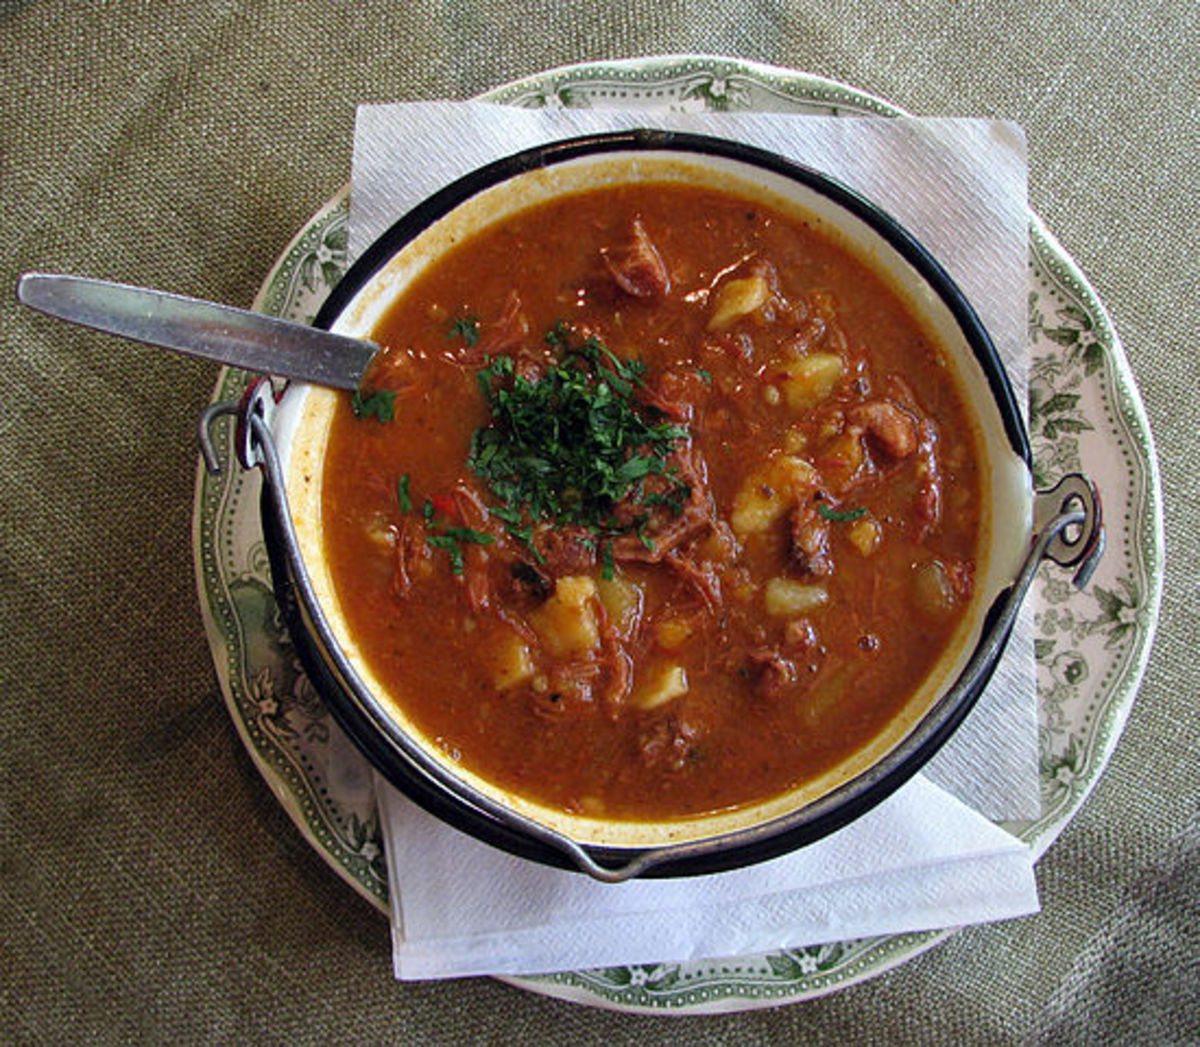 Beautifully presented bowl of Goulash